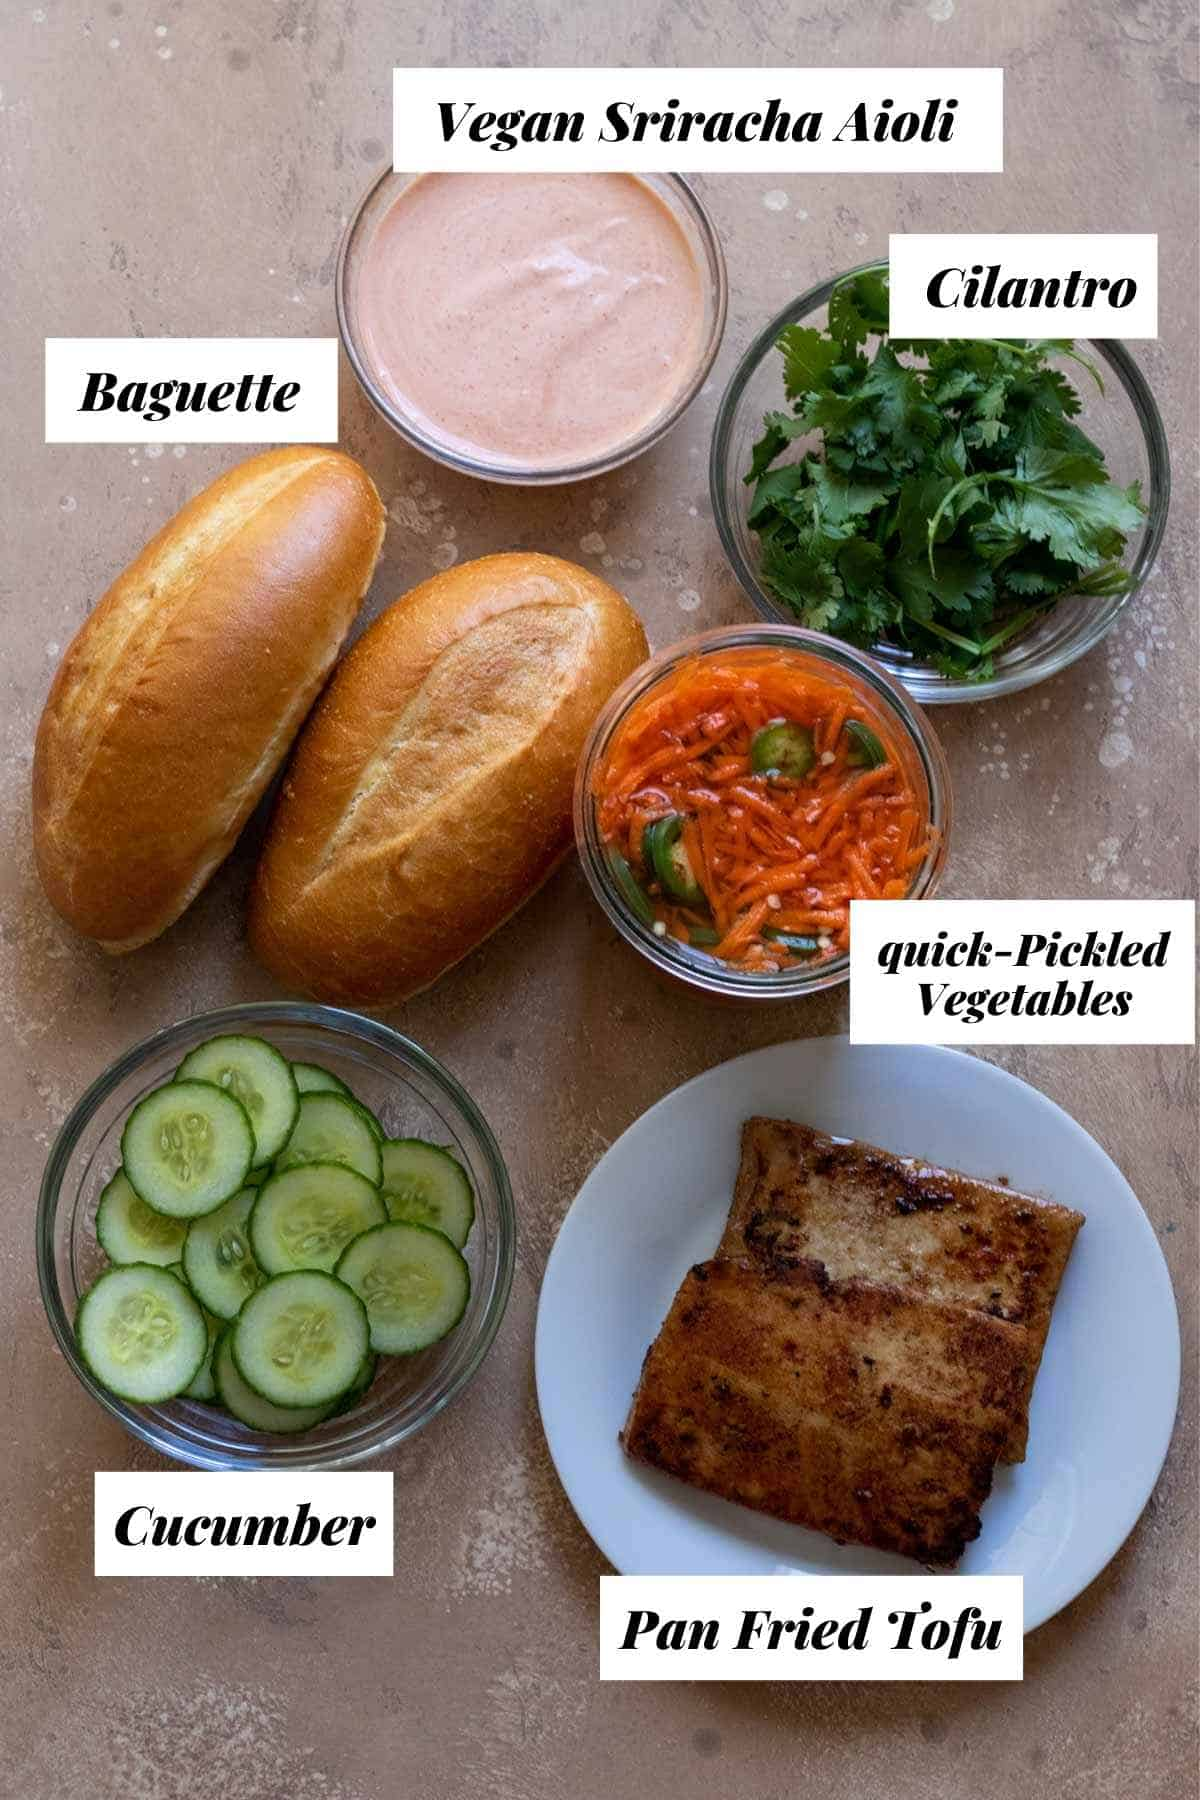 Ingredients needed to make a homemade tofu banh mi sandwich including baguette, cilantro, tofu, quick pickled vegetables, cucumber slices, and aioli.